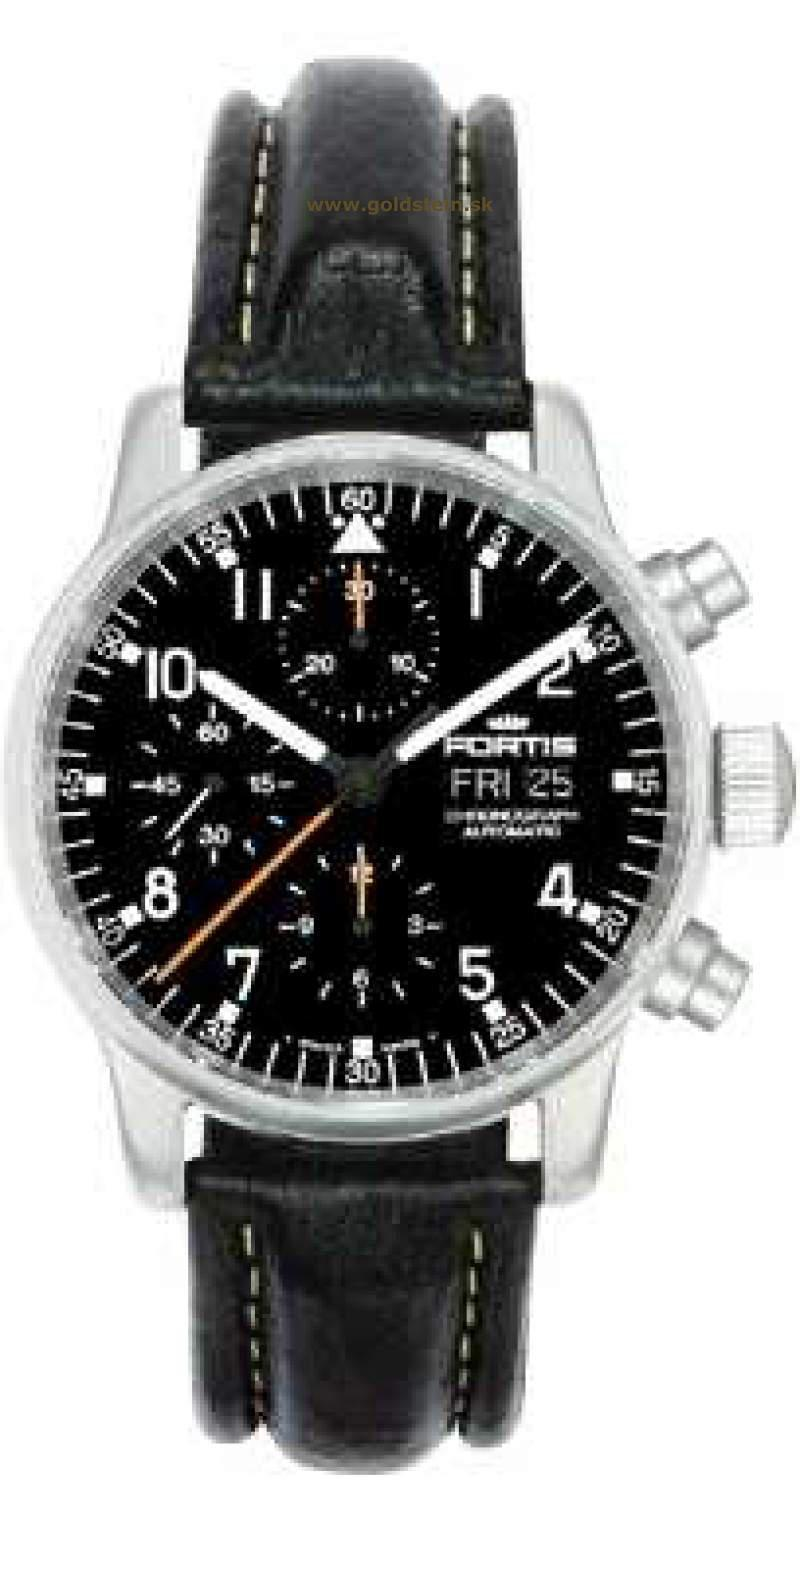 fortis-597-11-11-ls-259